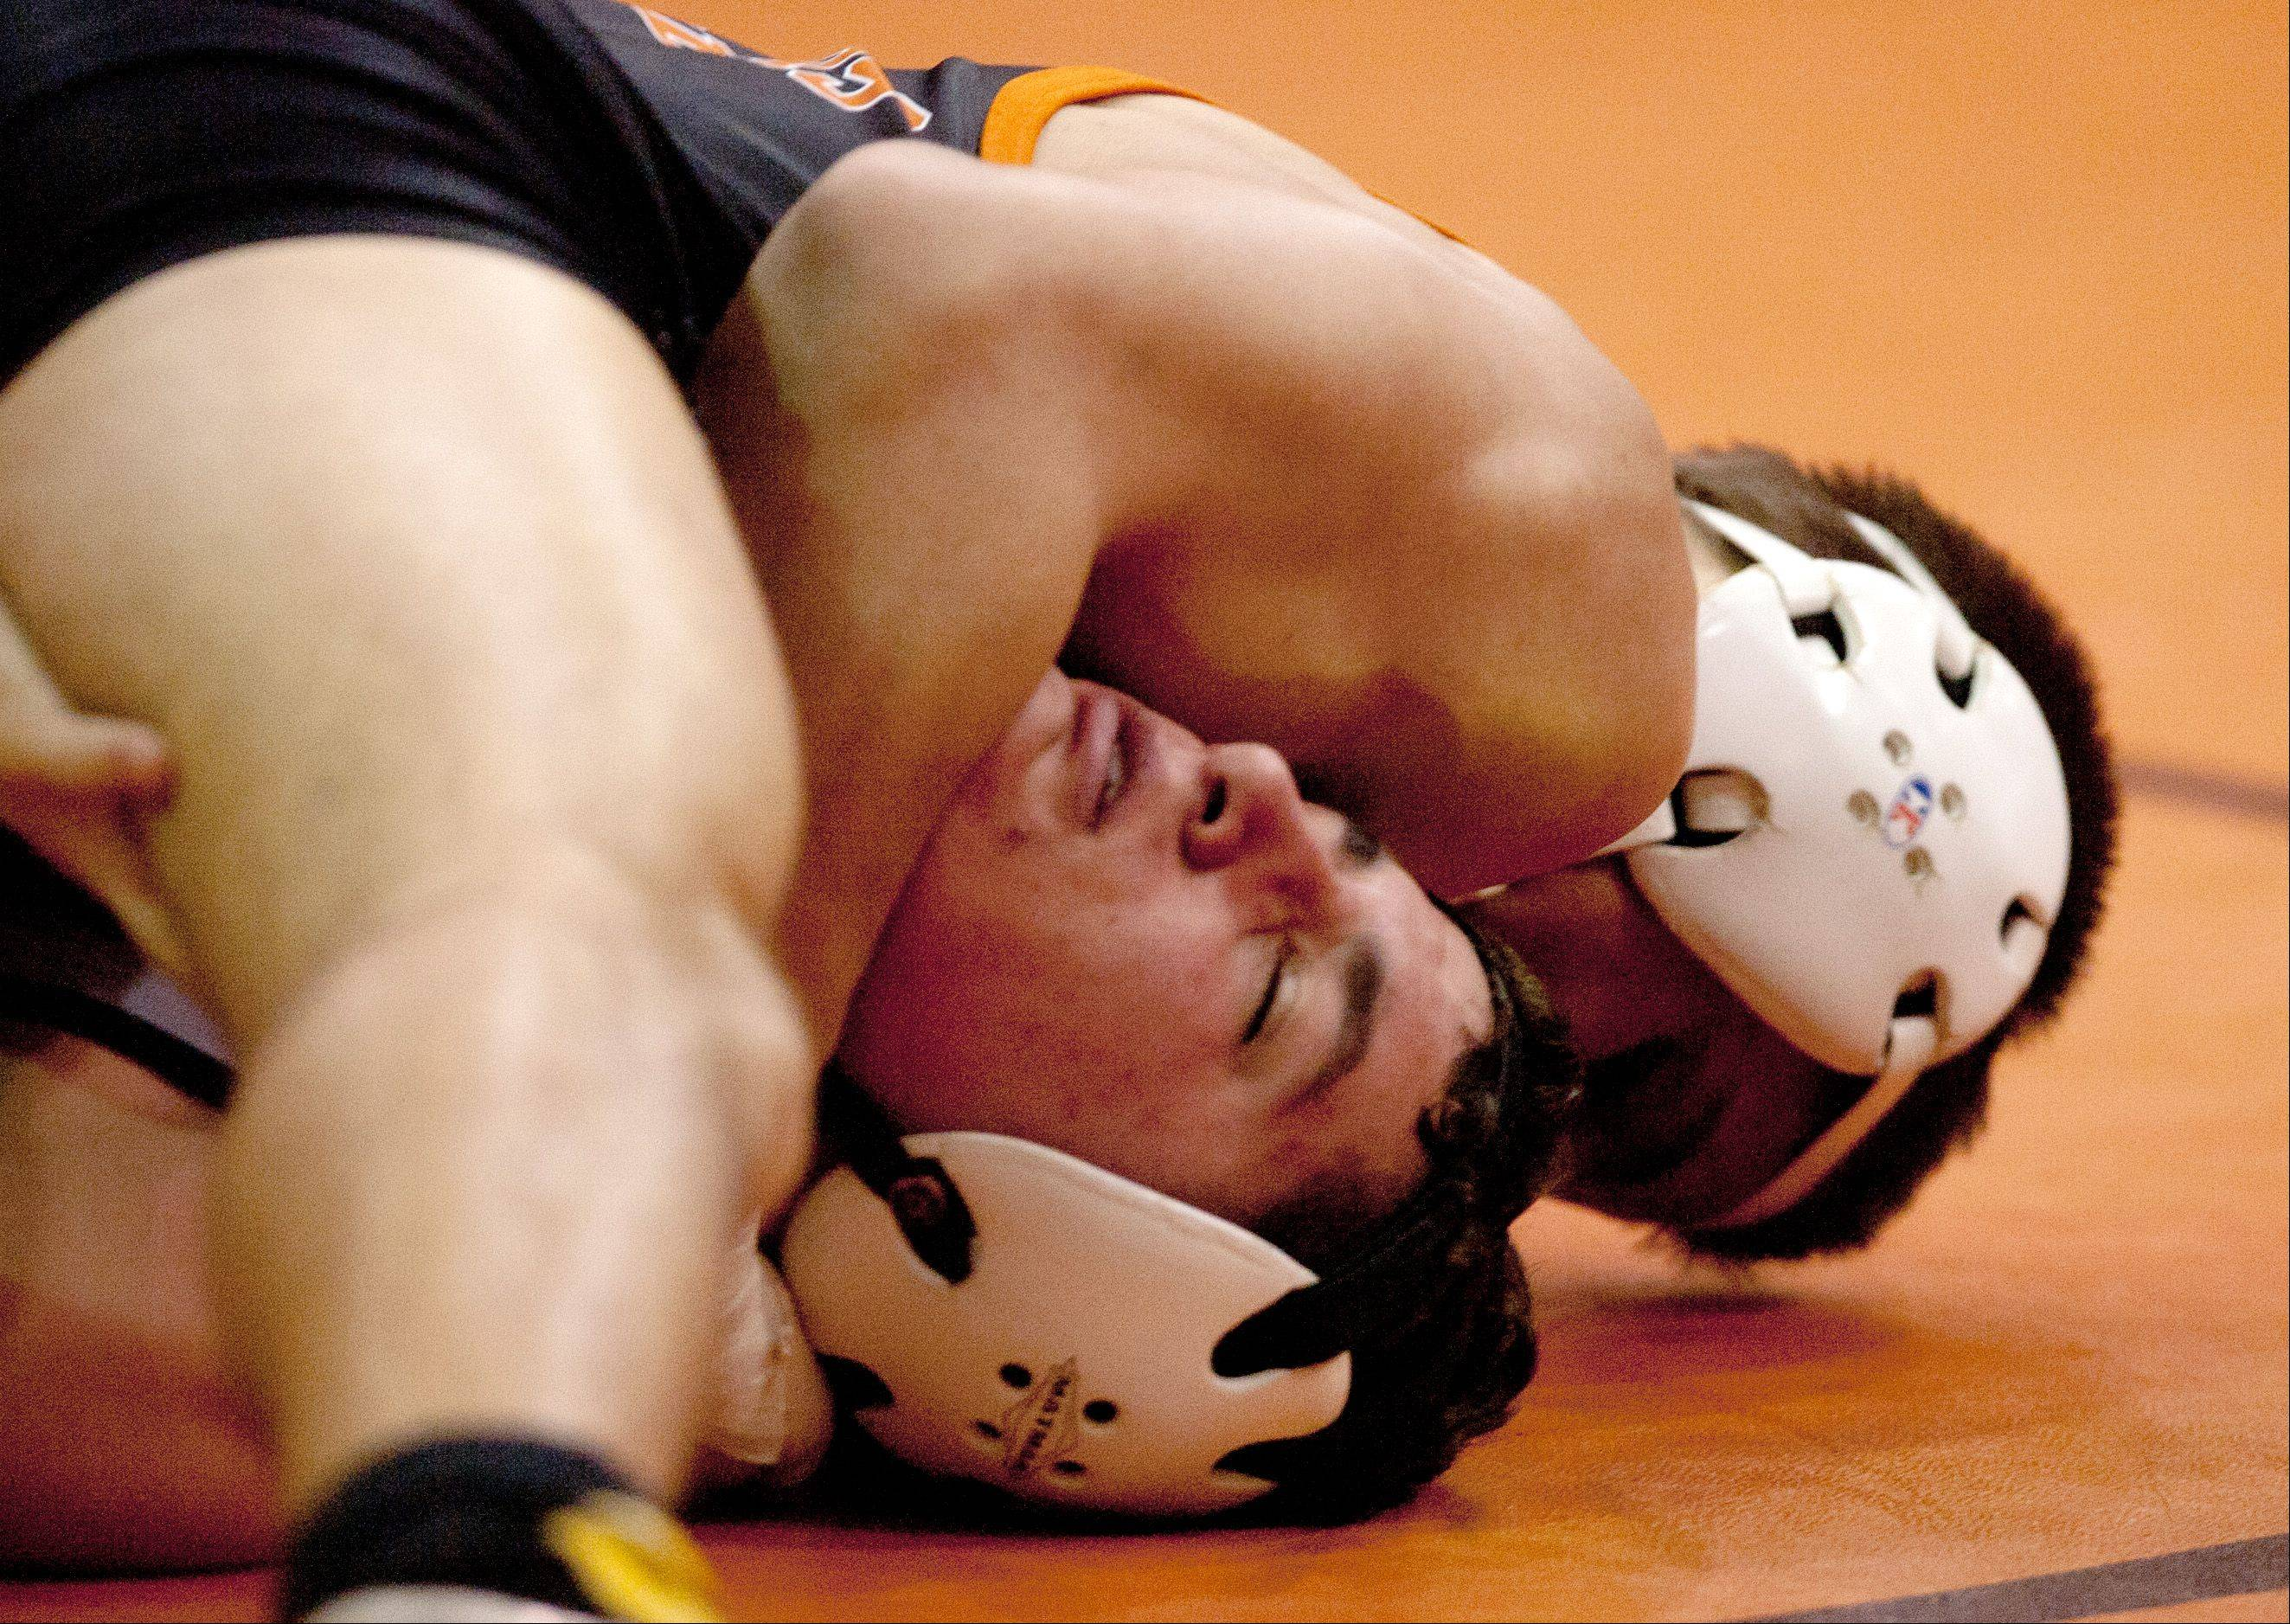 Wheaton Warrenville South's Cain Bialas, top, works to pin Lake Park's Will Heidenreich at the 160 weight, during the Wheaton Warrenville South wrestling quad.